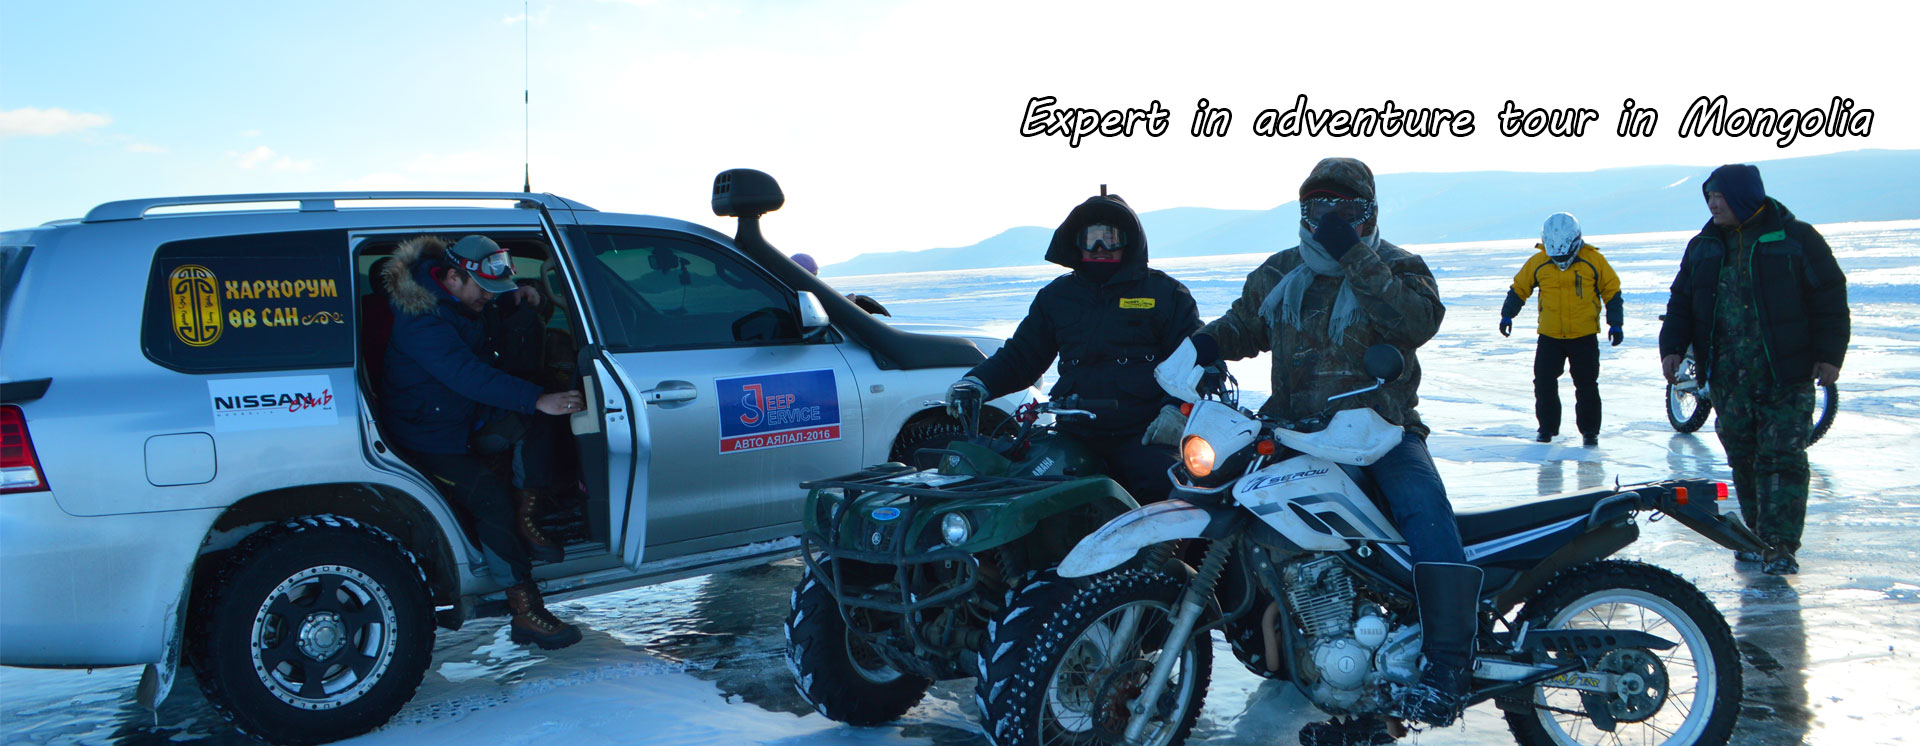 motorcycle-tour-on-ice-.jpg